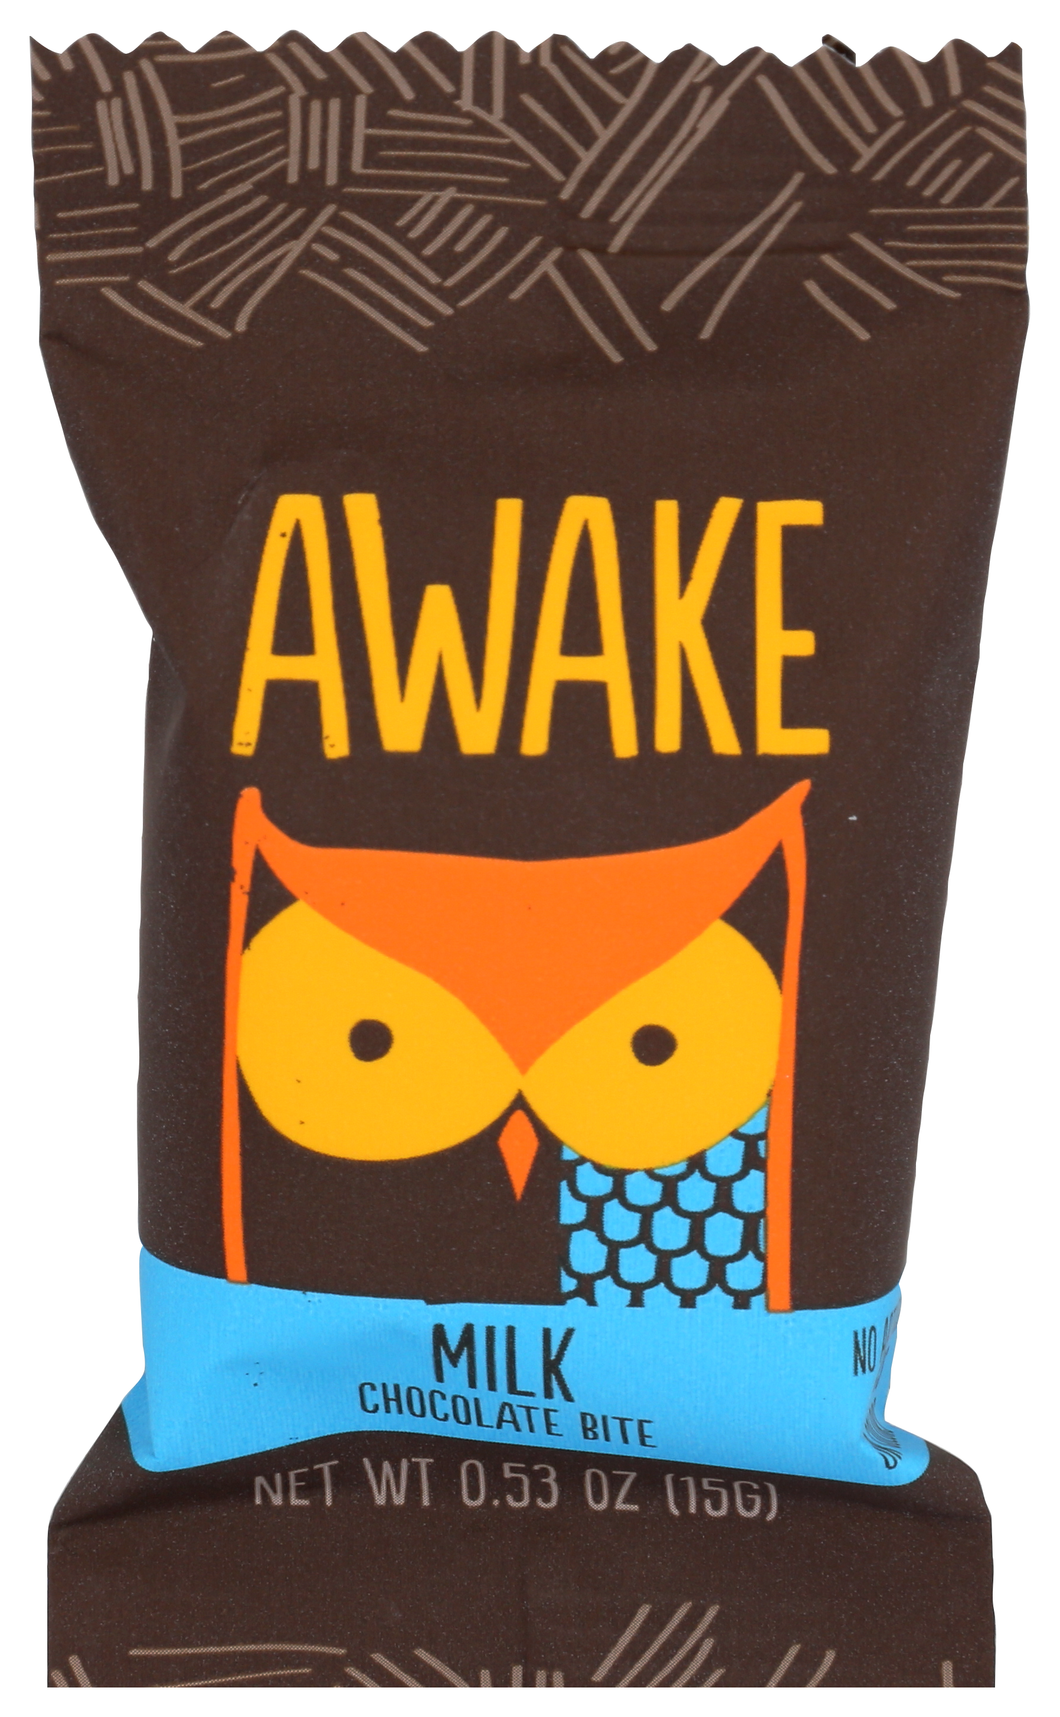 Awake Milk Chocolate Bite